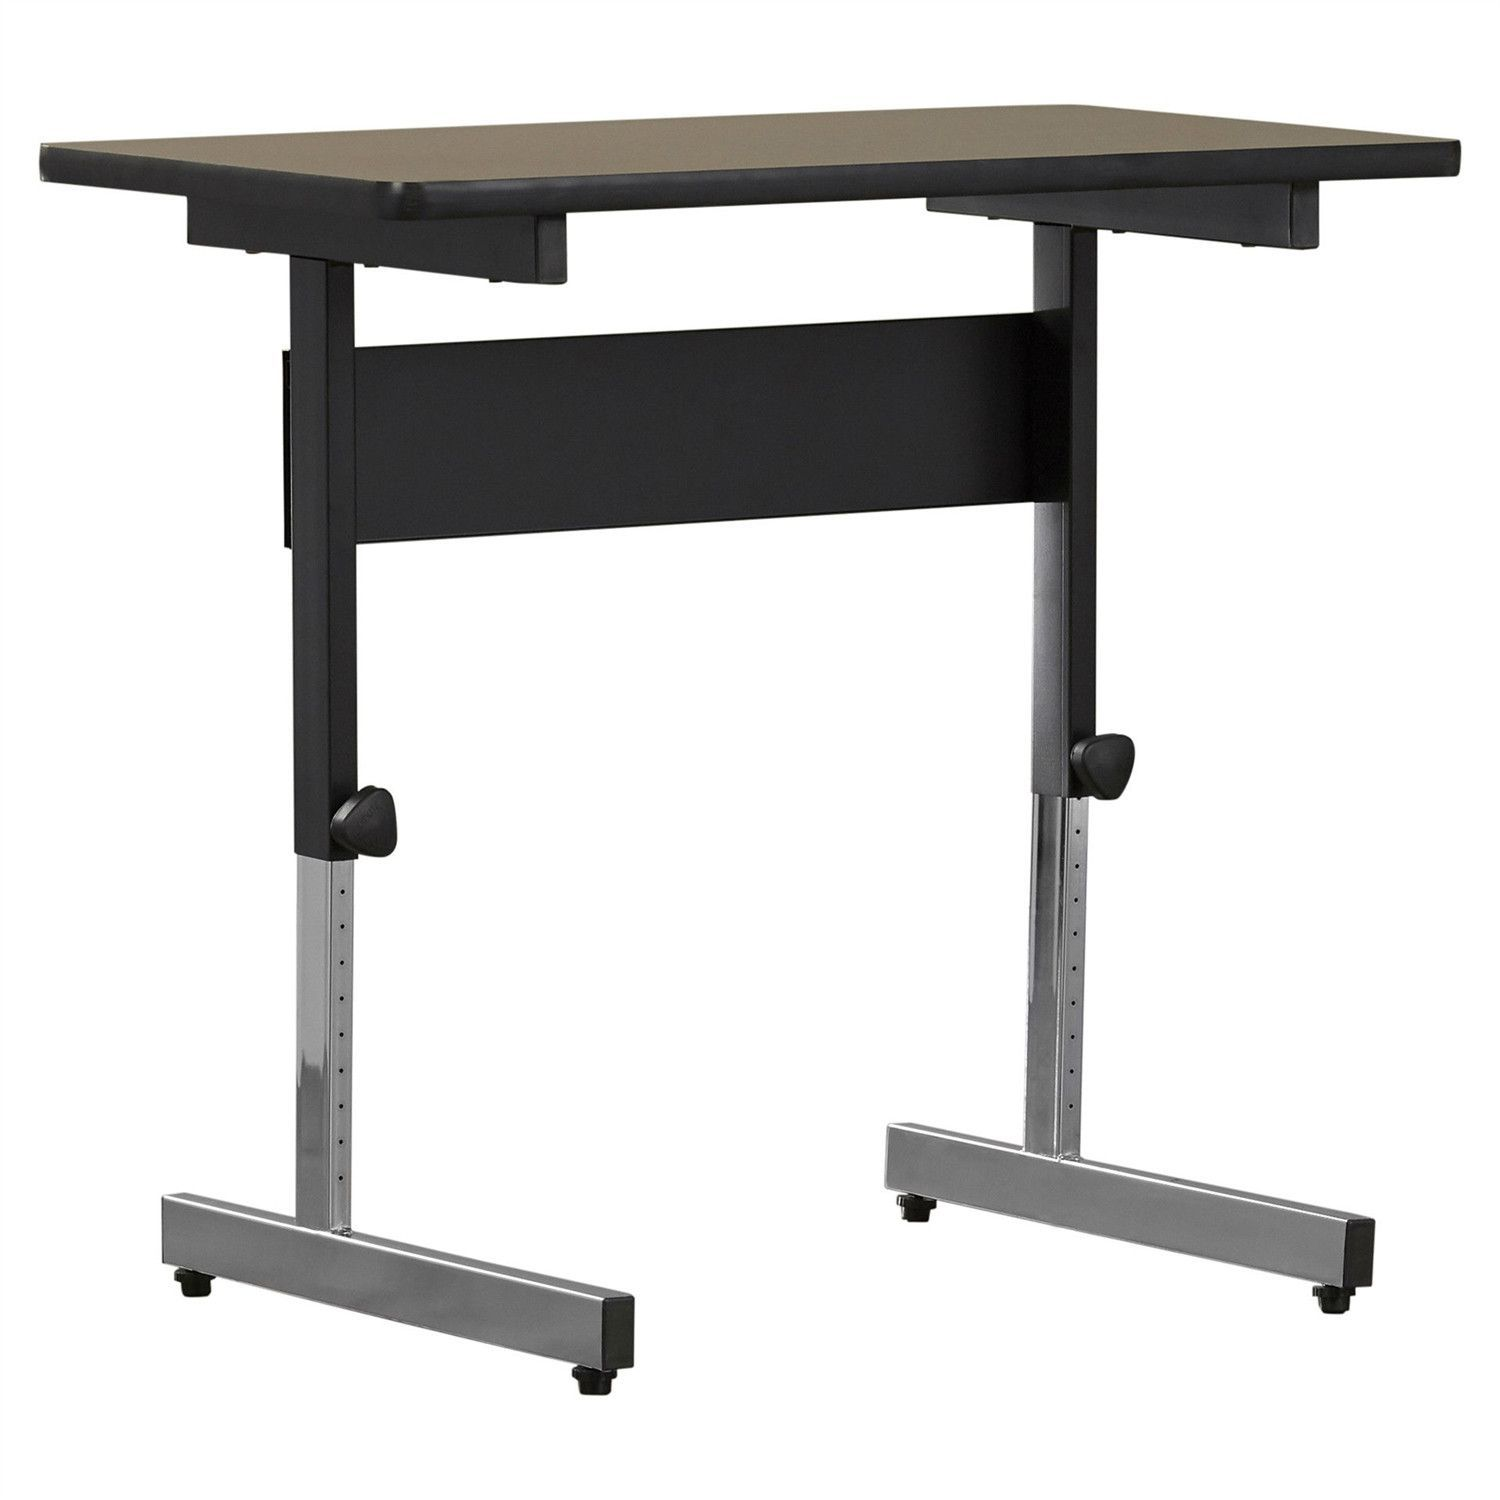 Stand up desk adjustable height sitting or standing writing tablet